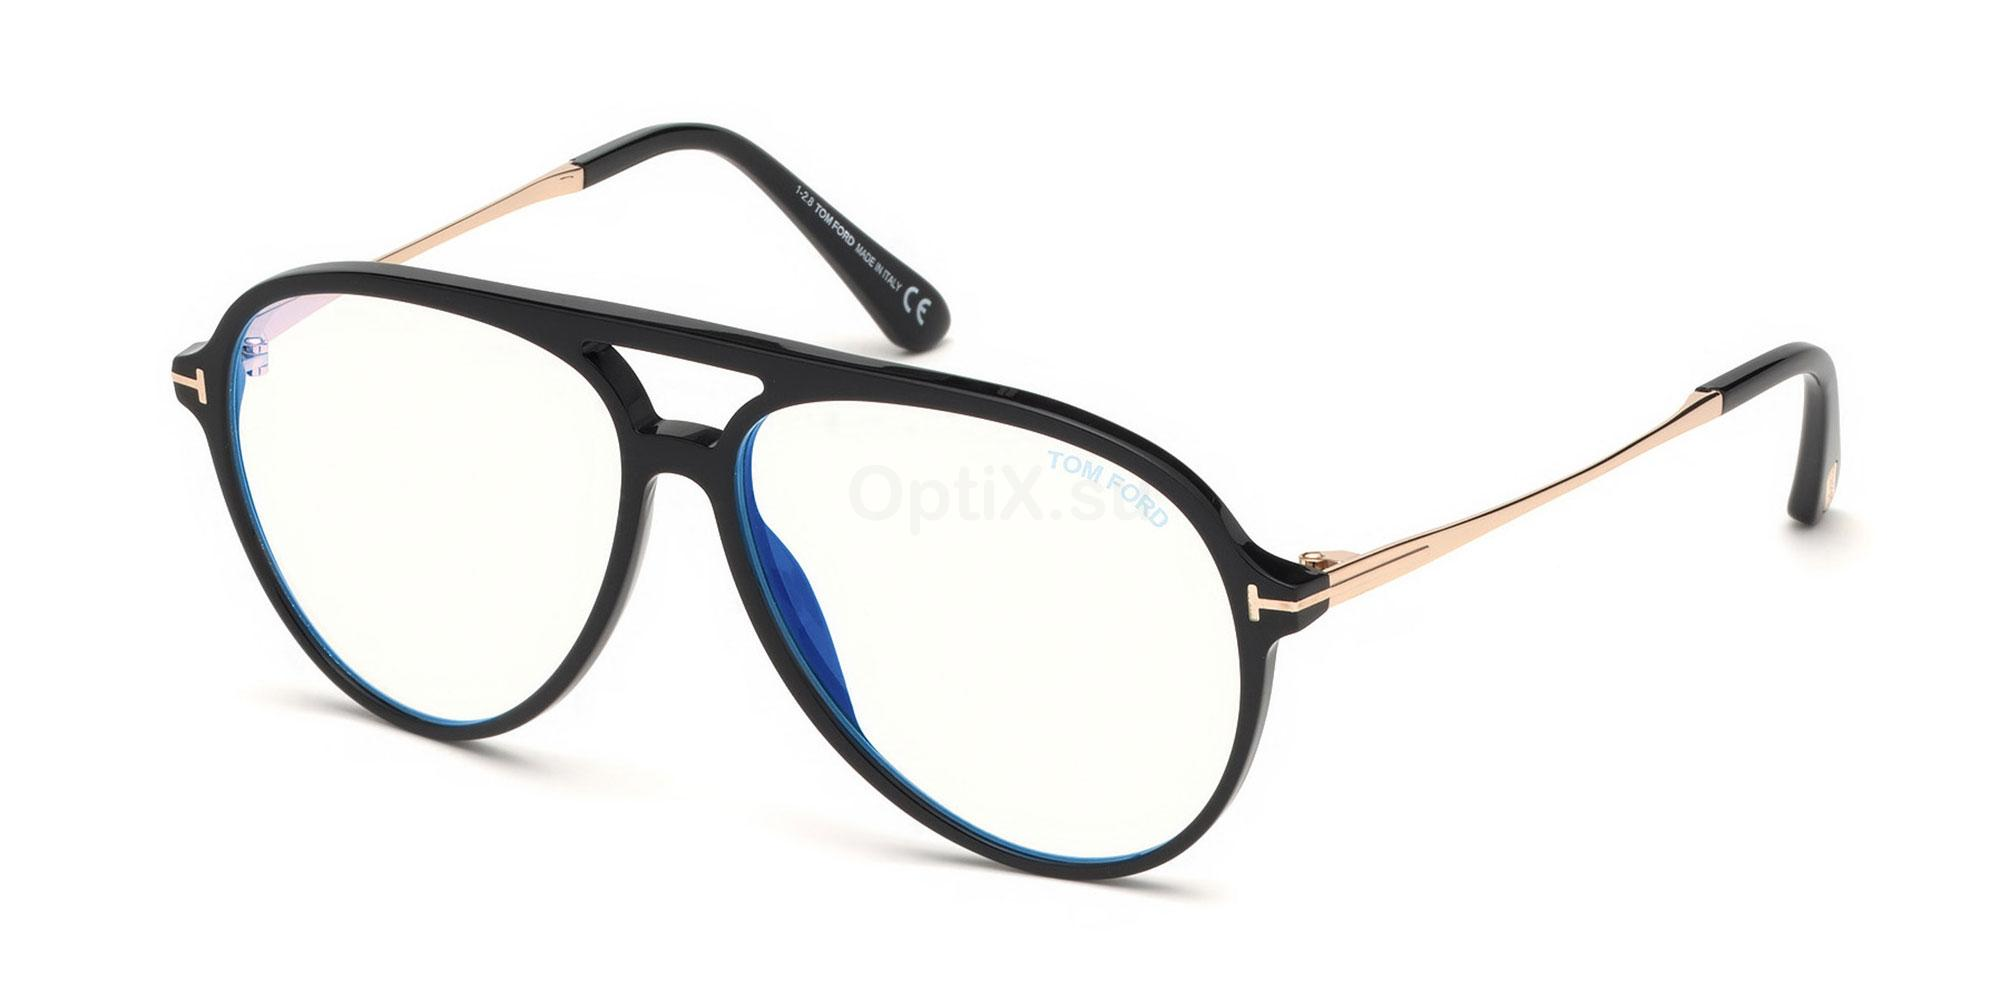 001 FT5586-B Glasses, Tom Ford